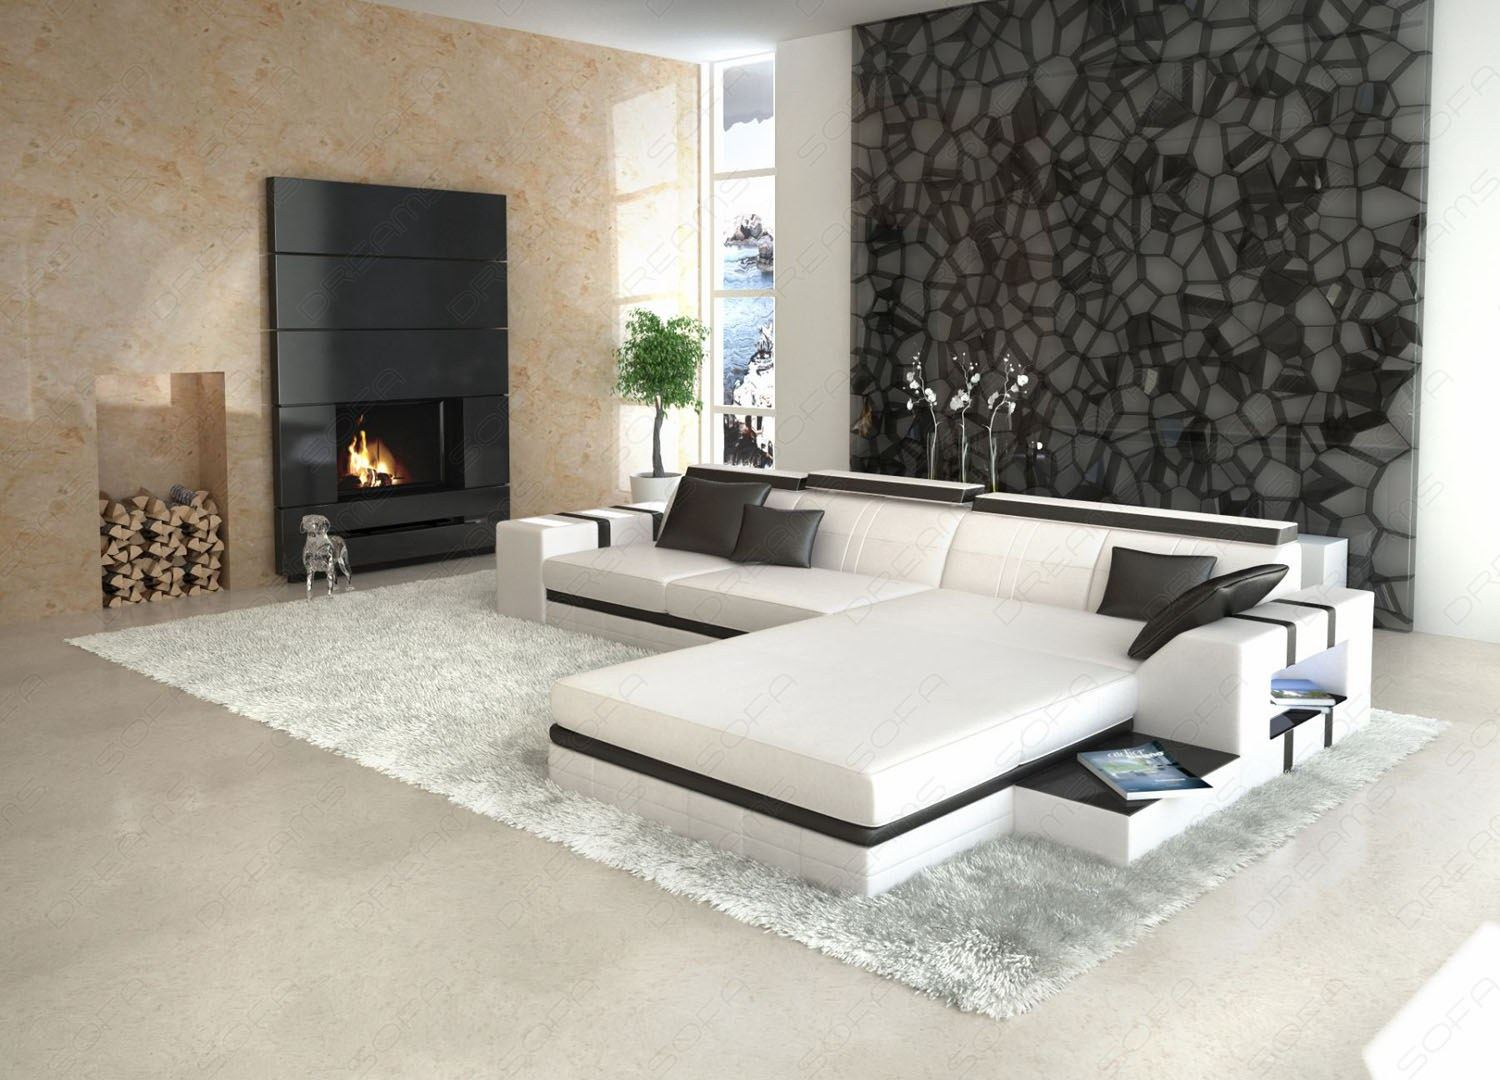 ledersofa asti l form wei mit beleuchtung design wohnlandschaft ebay. Black Bedroom Furniture Sets. Home Design Ideas